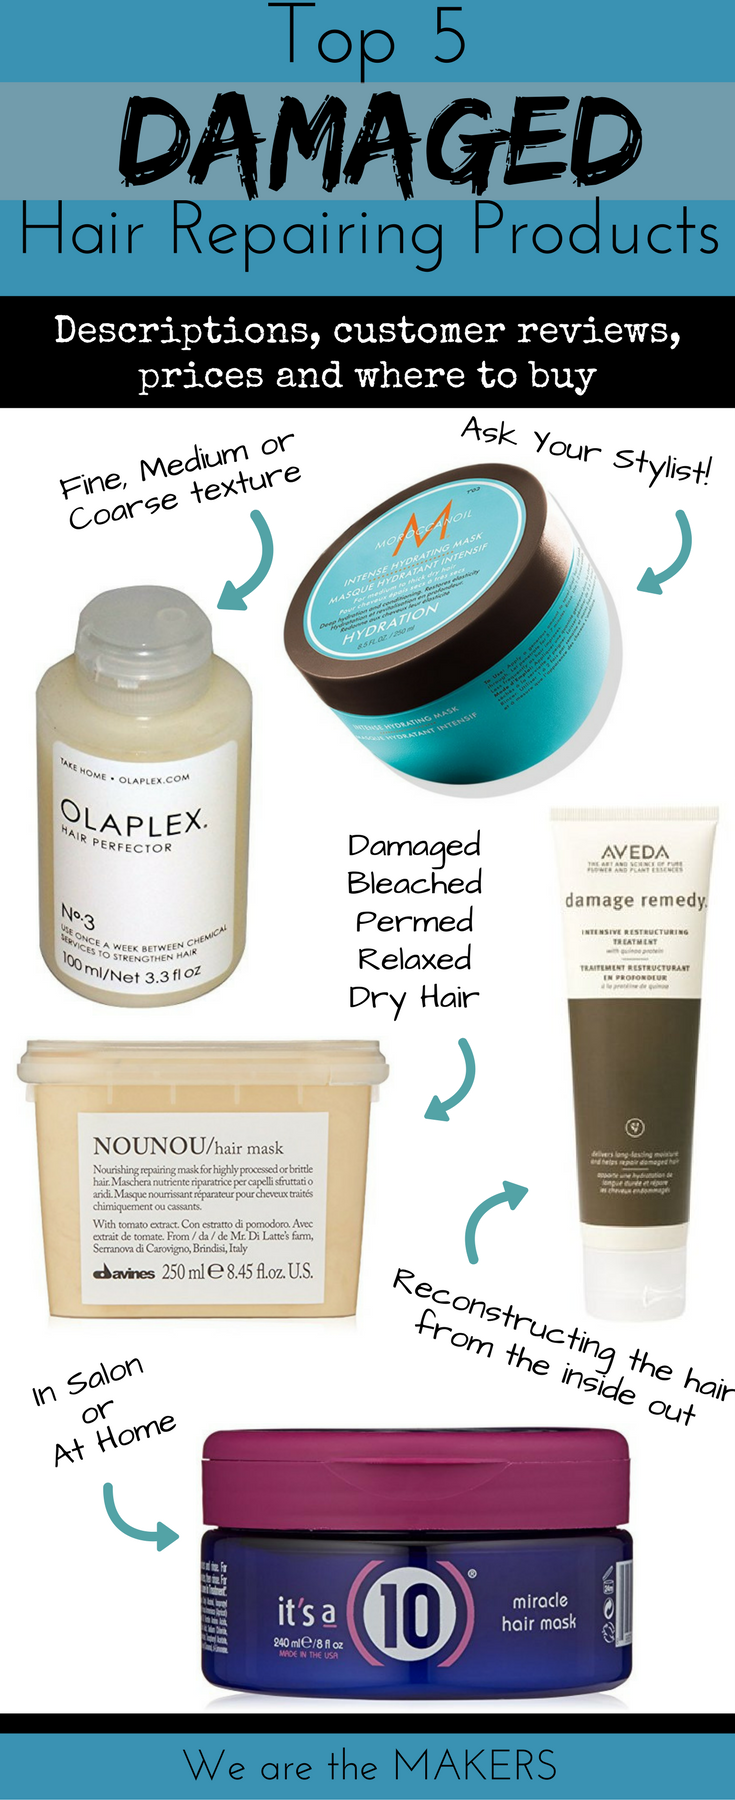 Top 5 Products For Damaged Hair Repair The Ultimate Beauty Board